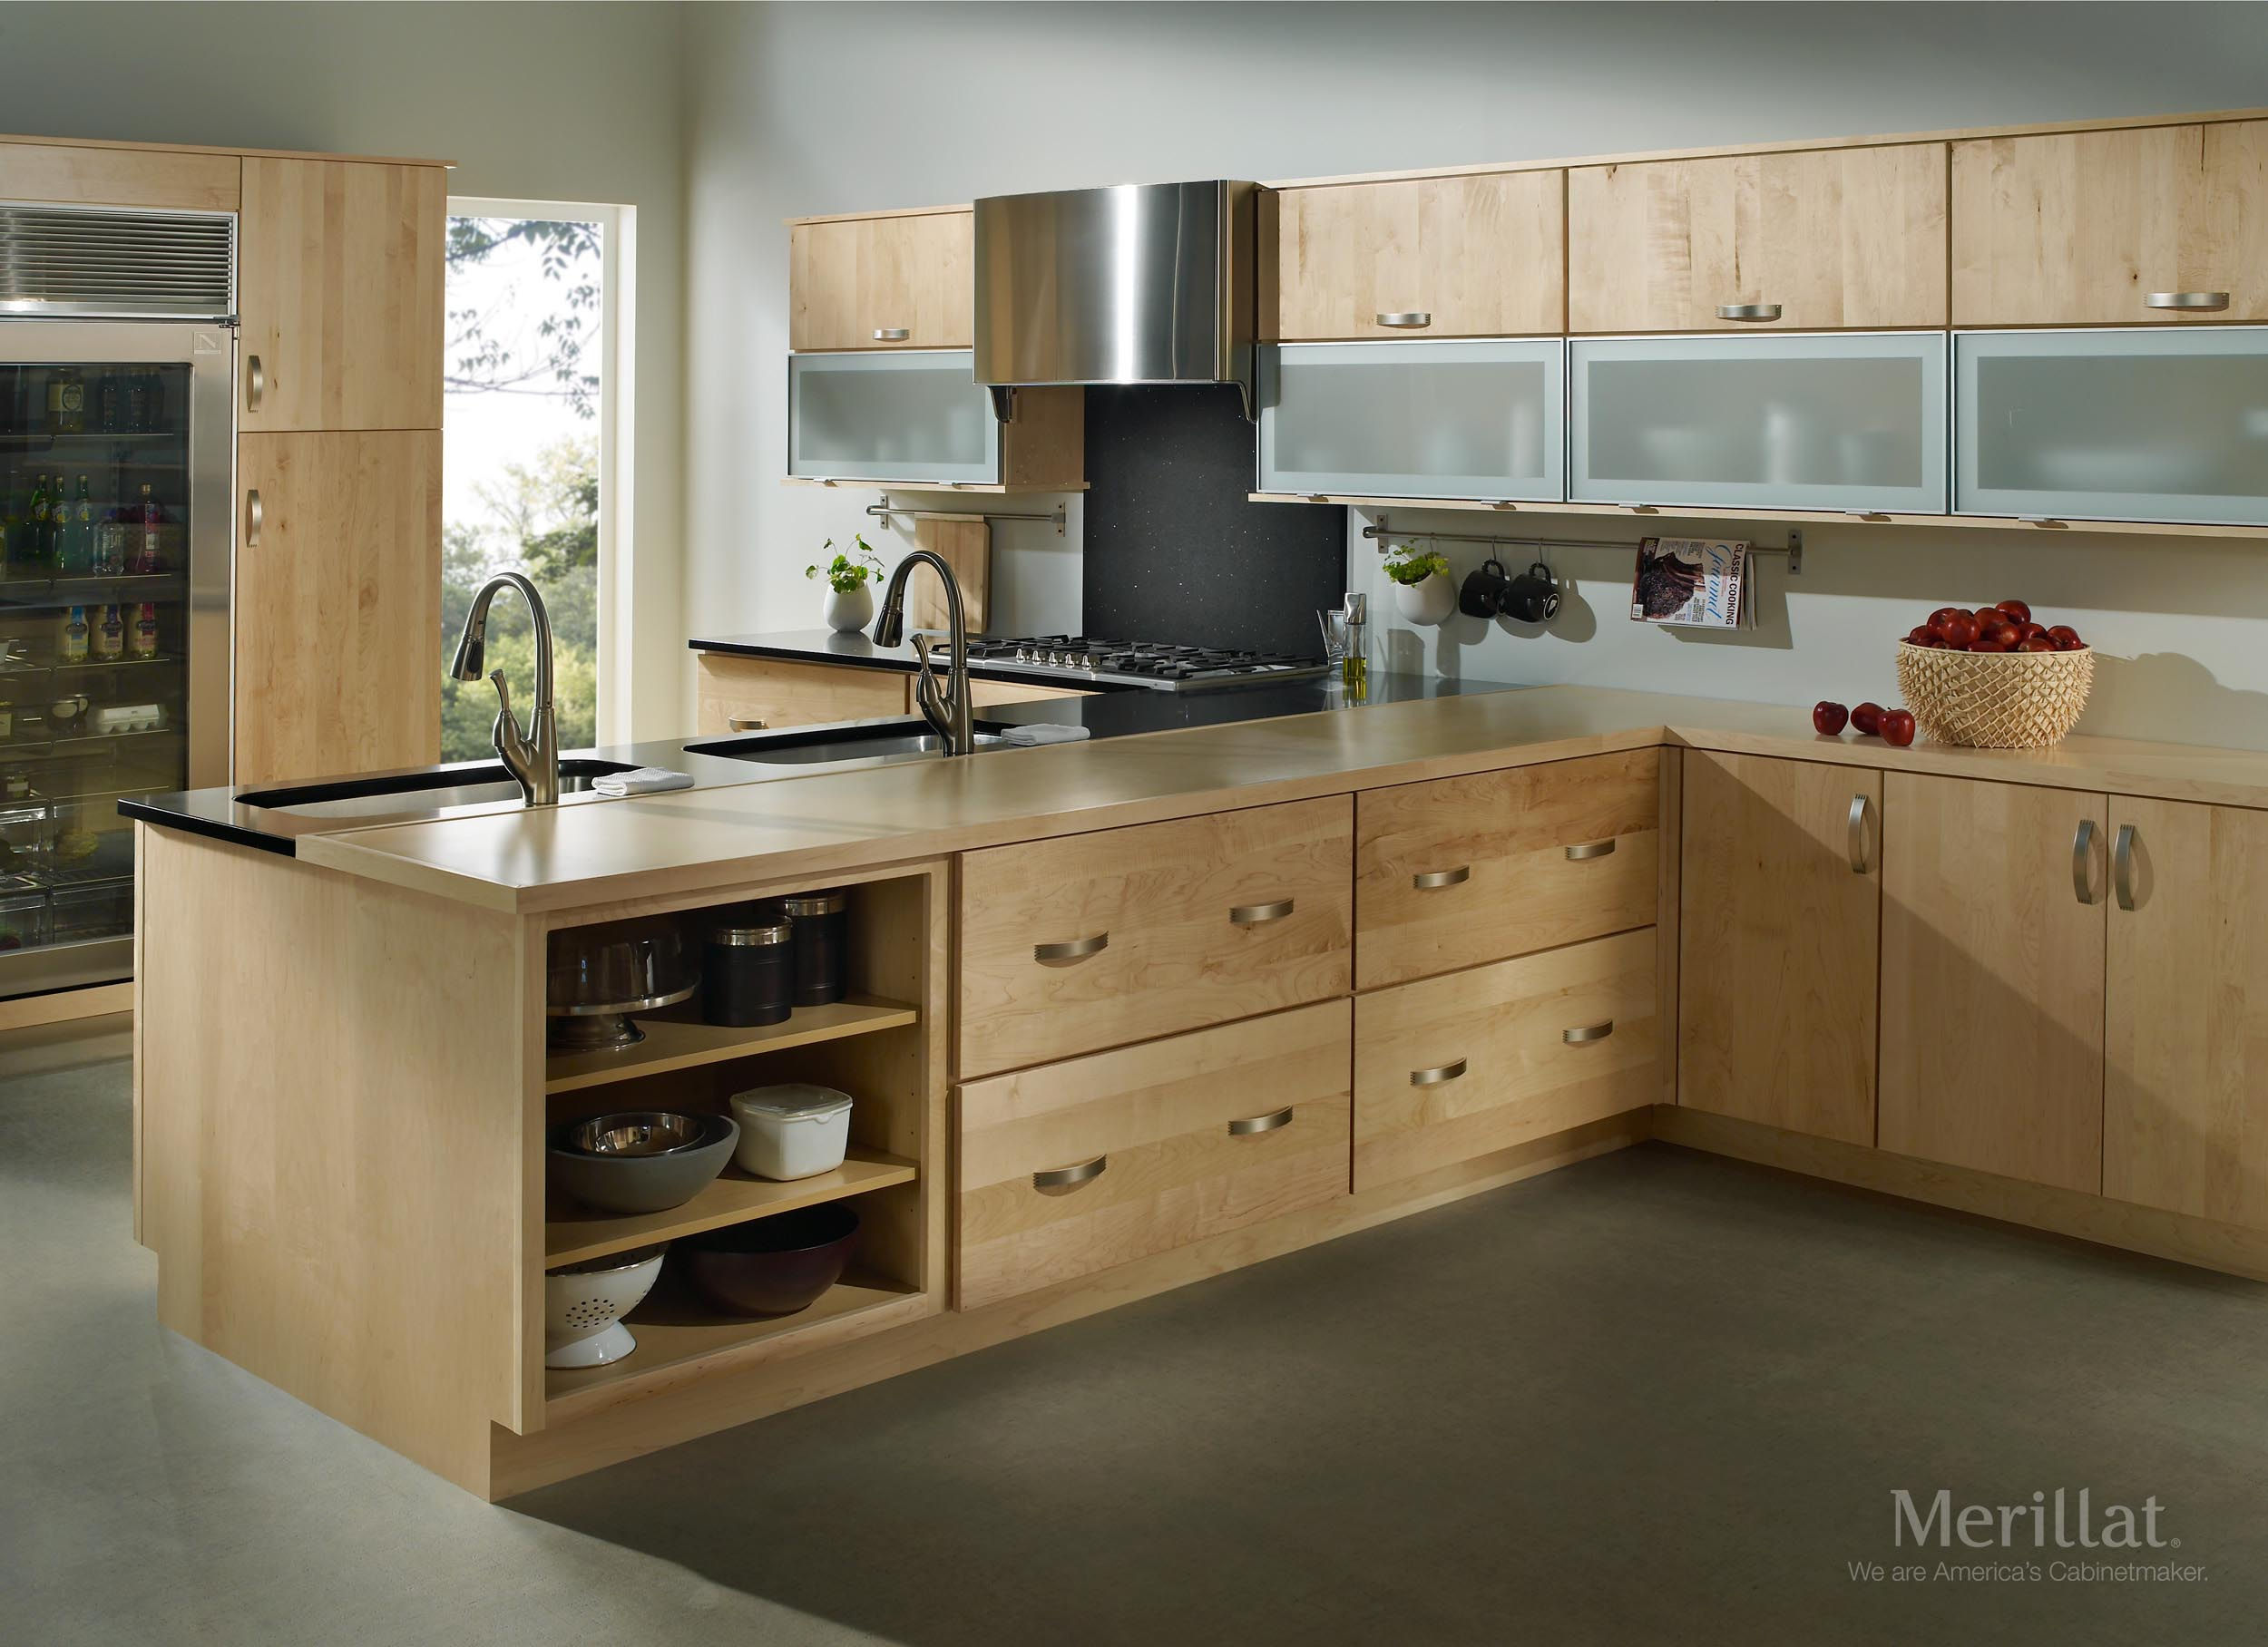 Merillat masterpiece epic in maple natura for Wood kitchen cabinets